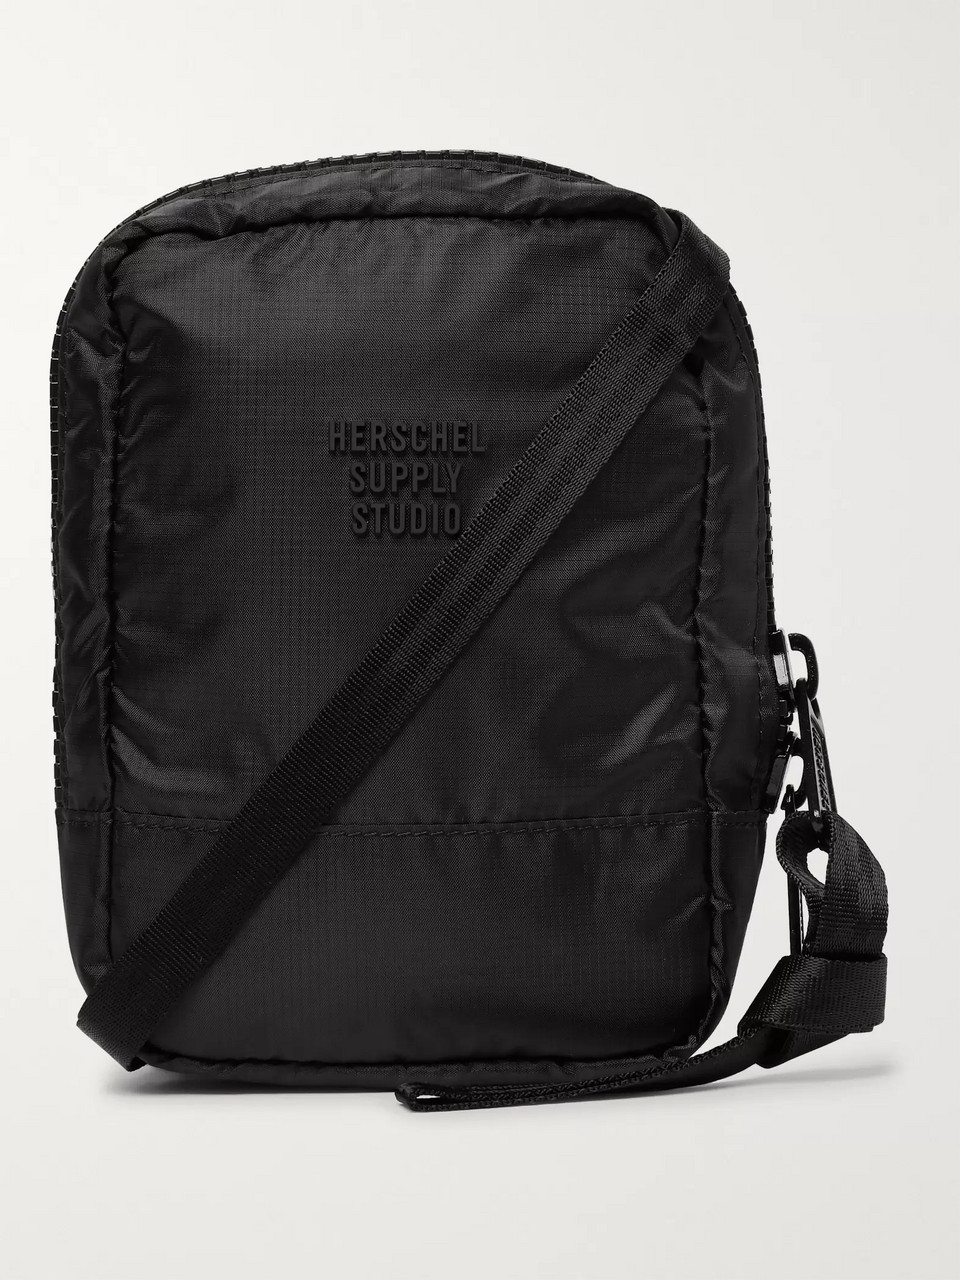 Herschel Supply Co Studio City Pack HS8 Ripstop Belt Bag